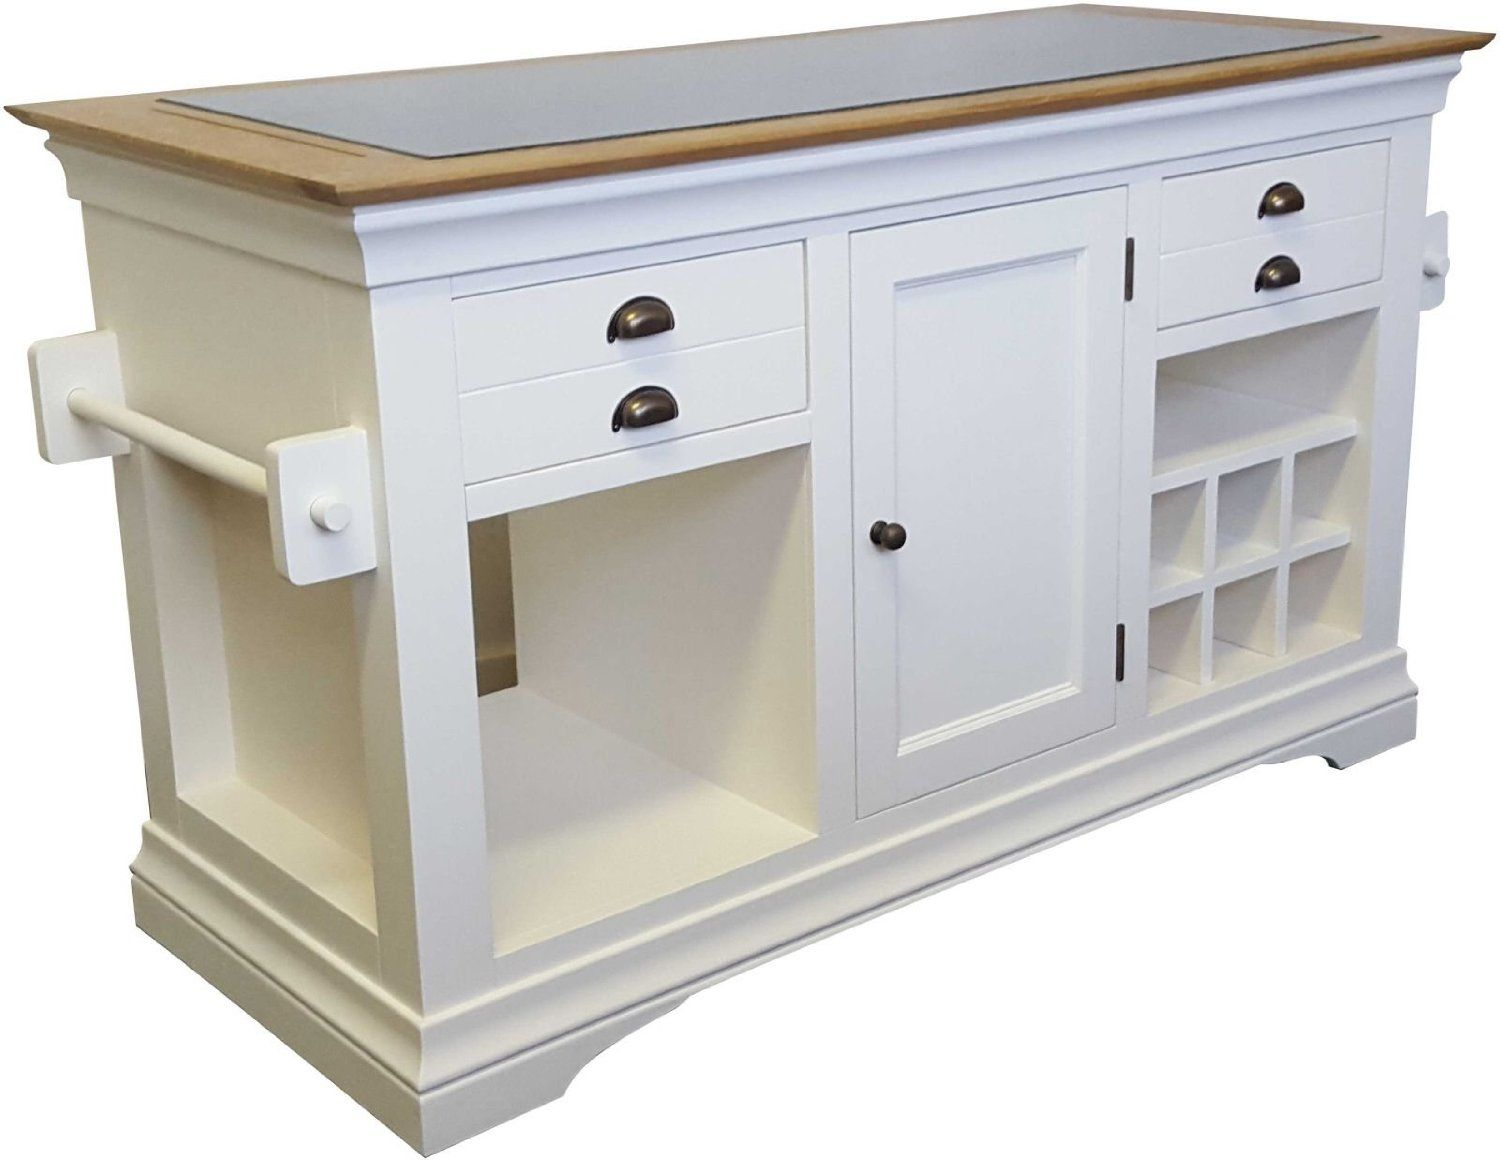 dijon cream painted furniture large granite top kitchen island dijon cream painted furniture large granite top kitchen island unit worktop amazon co